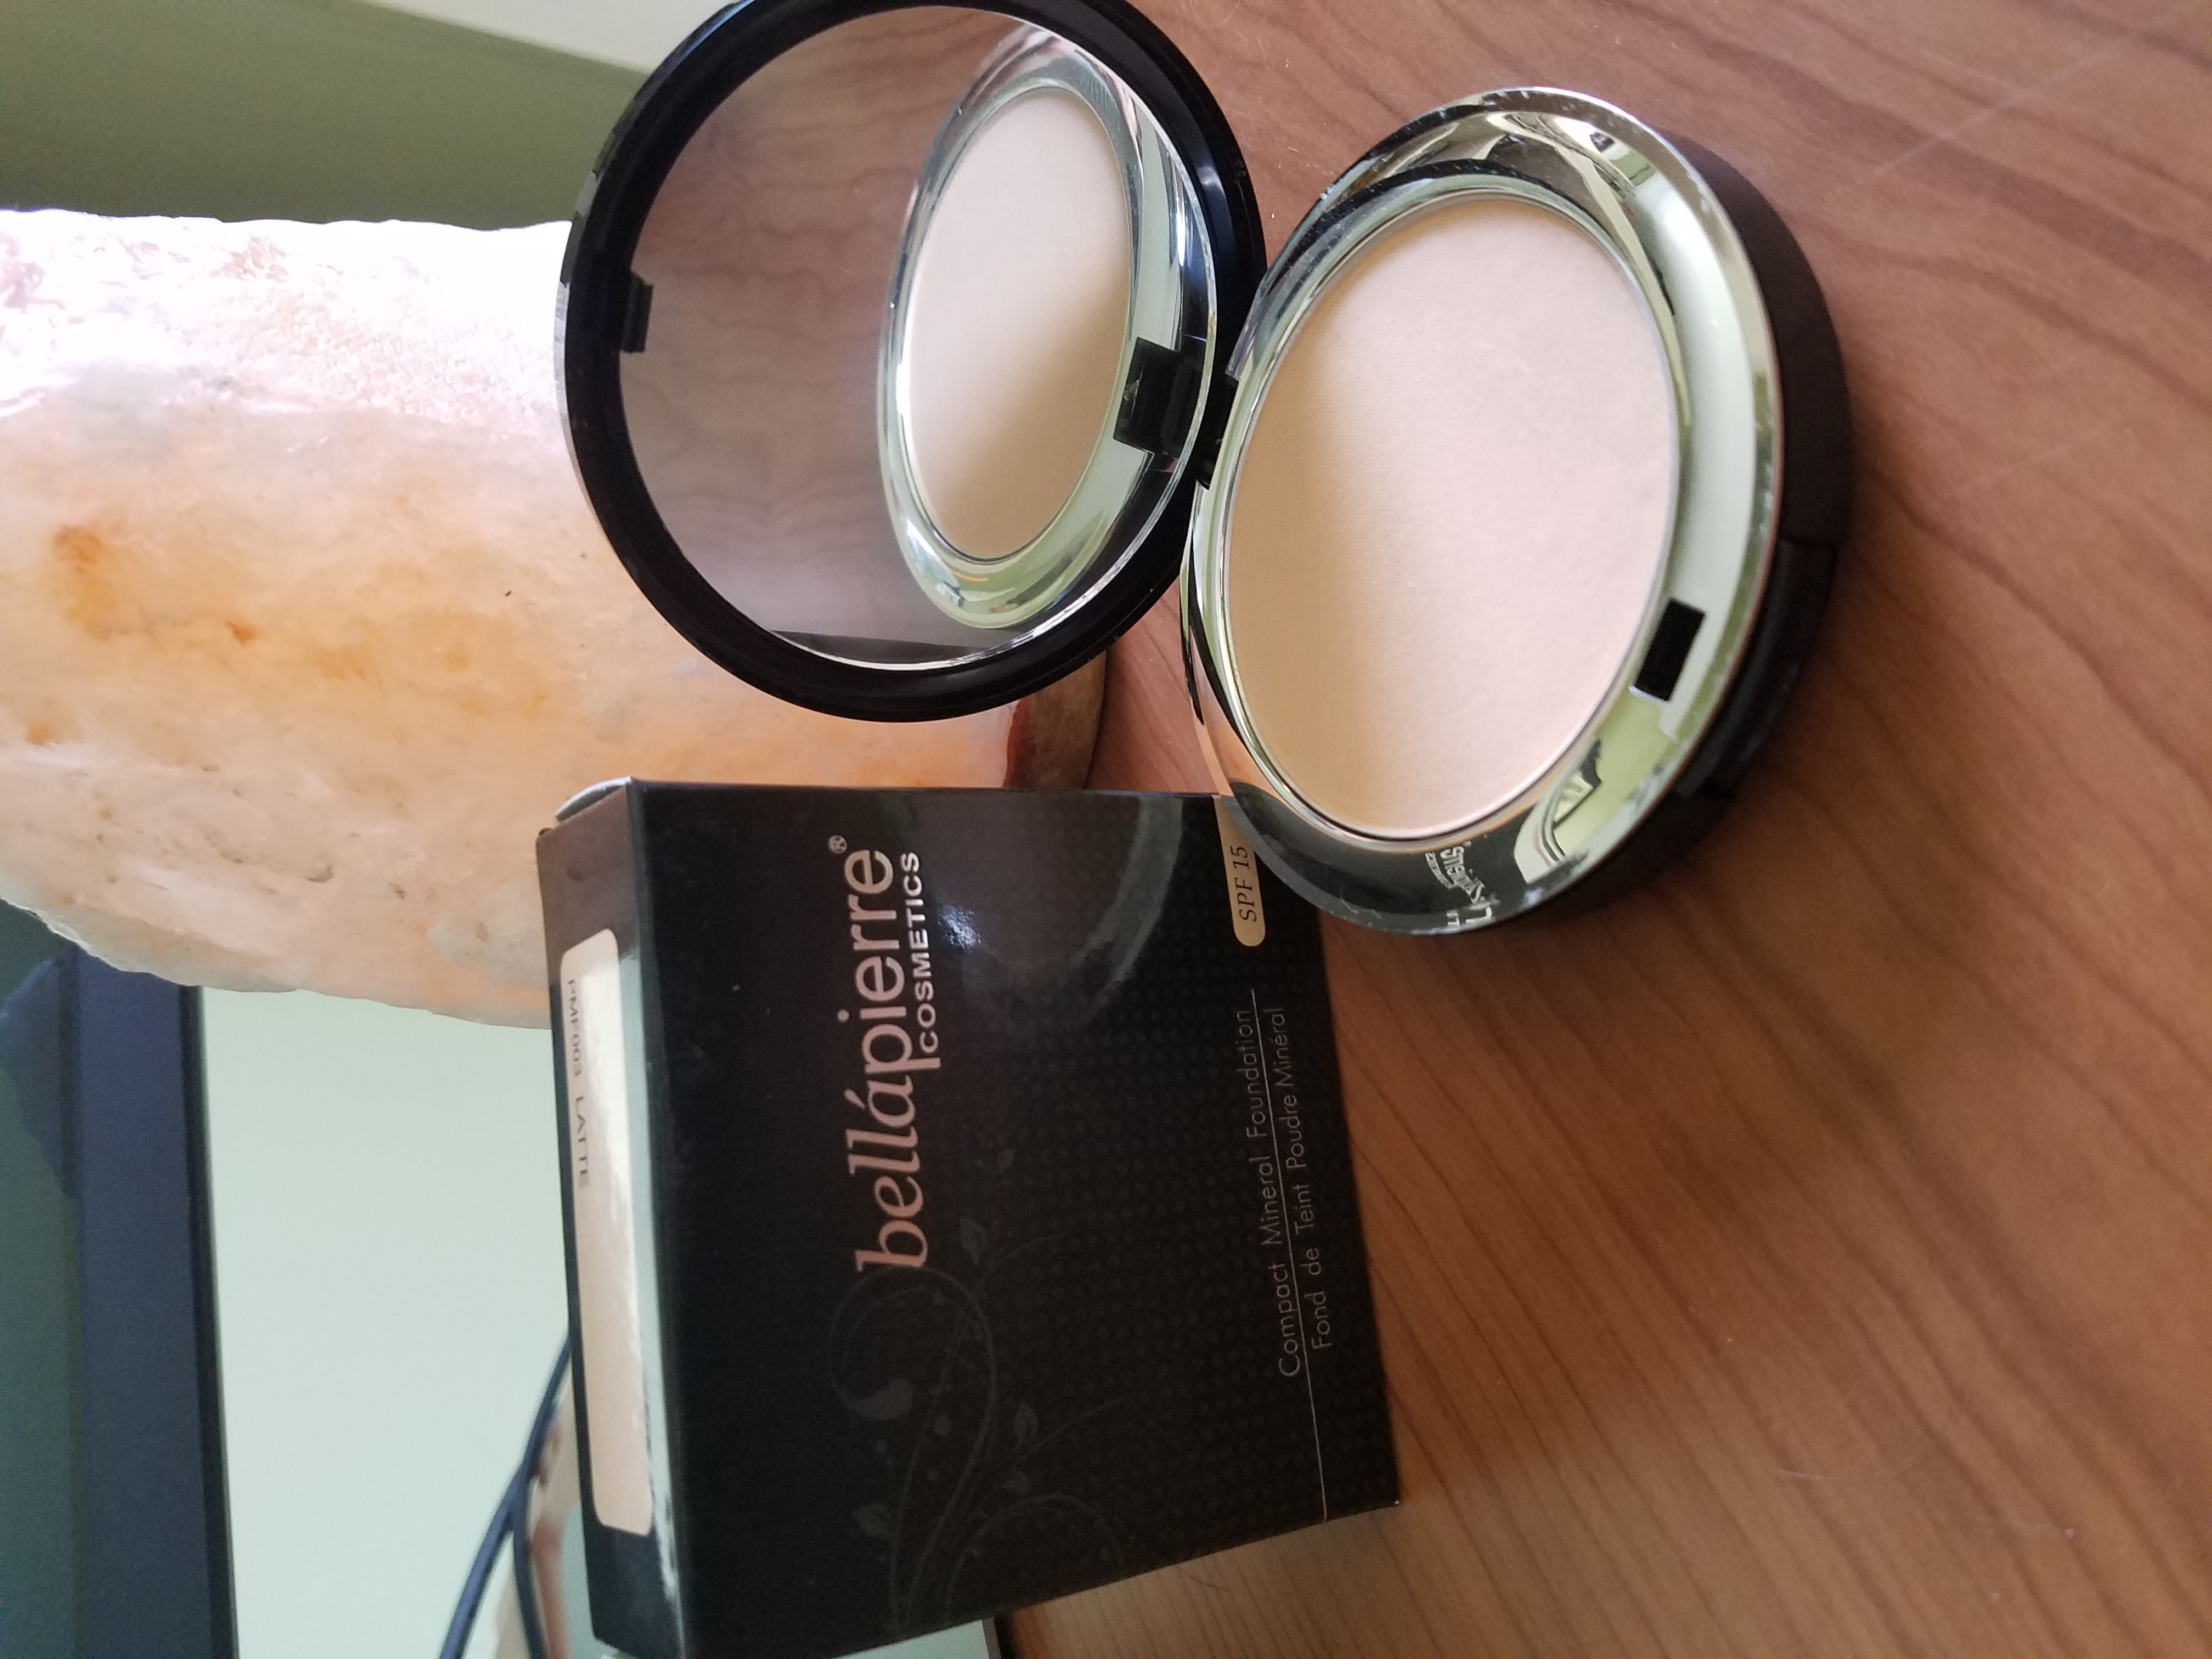 Bellapierre mineral foundation in latte